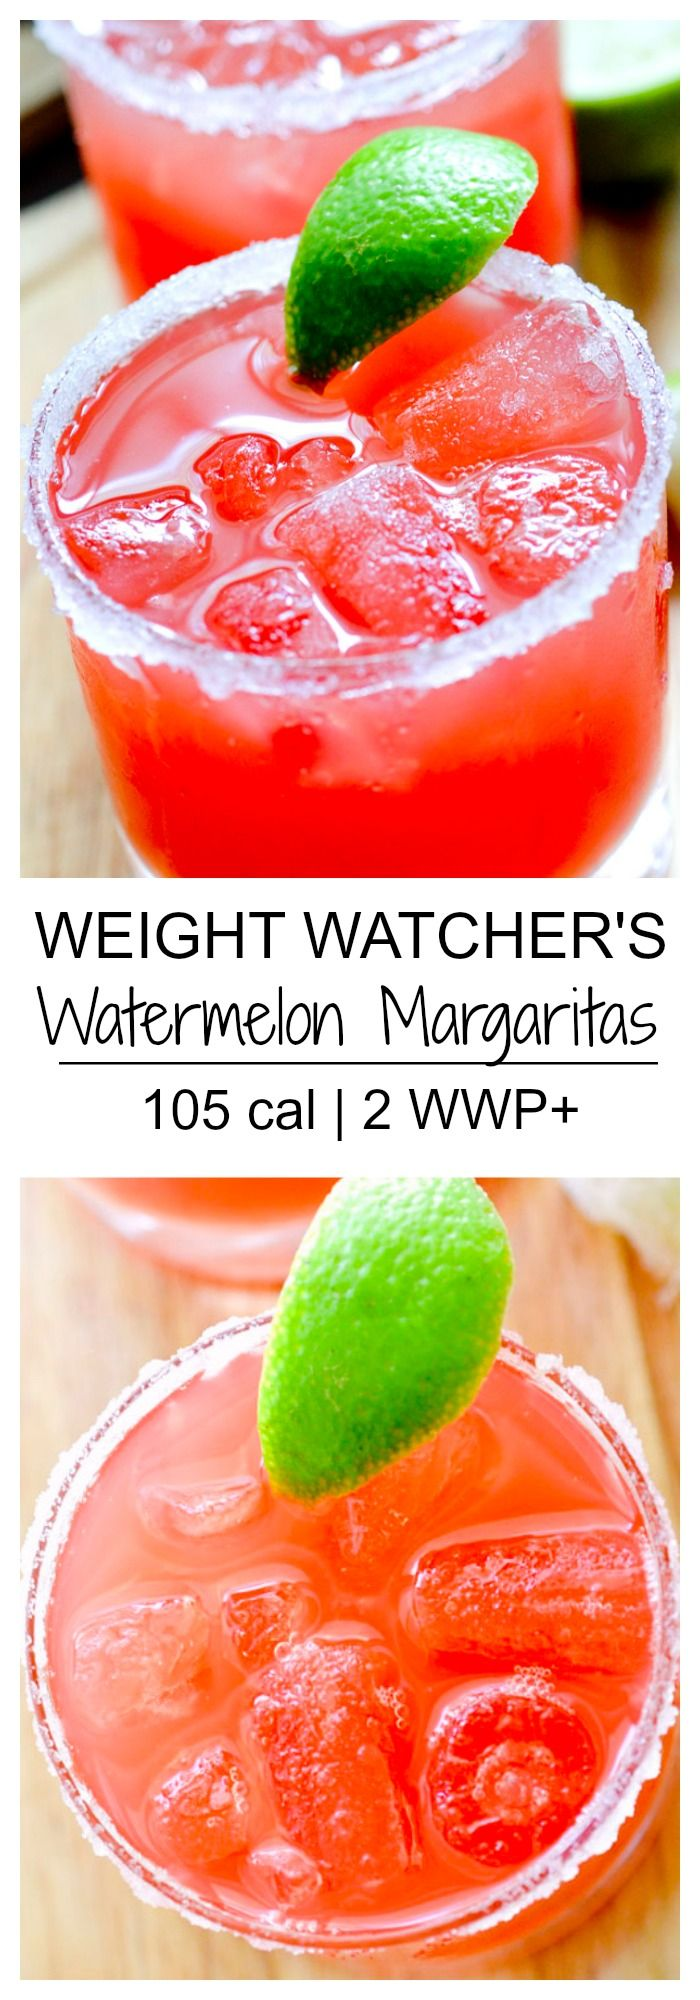 Watermelon Margaritas - 2 points plus - Recipe Diaries